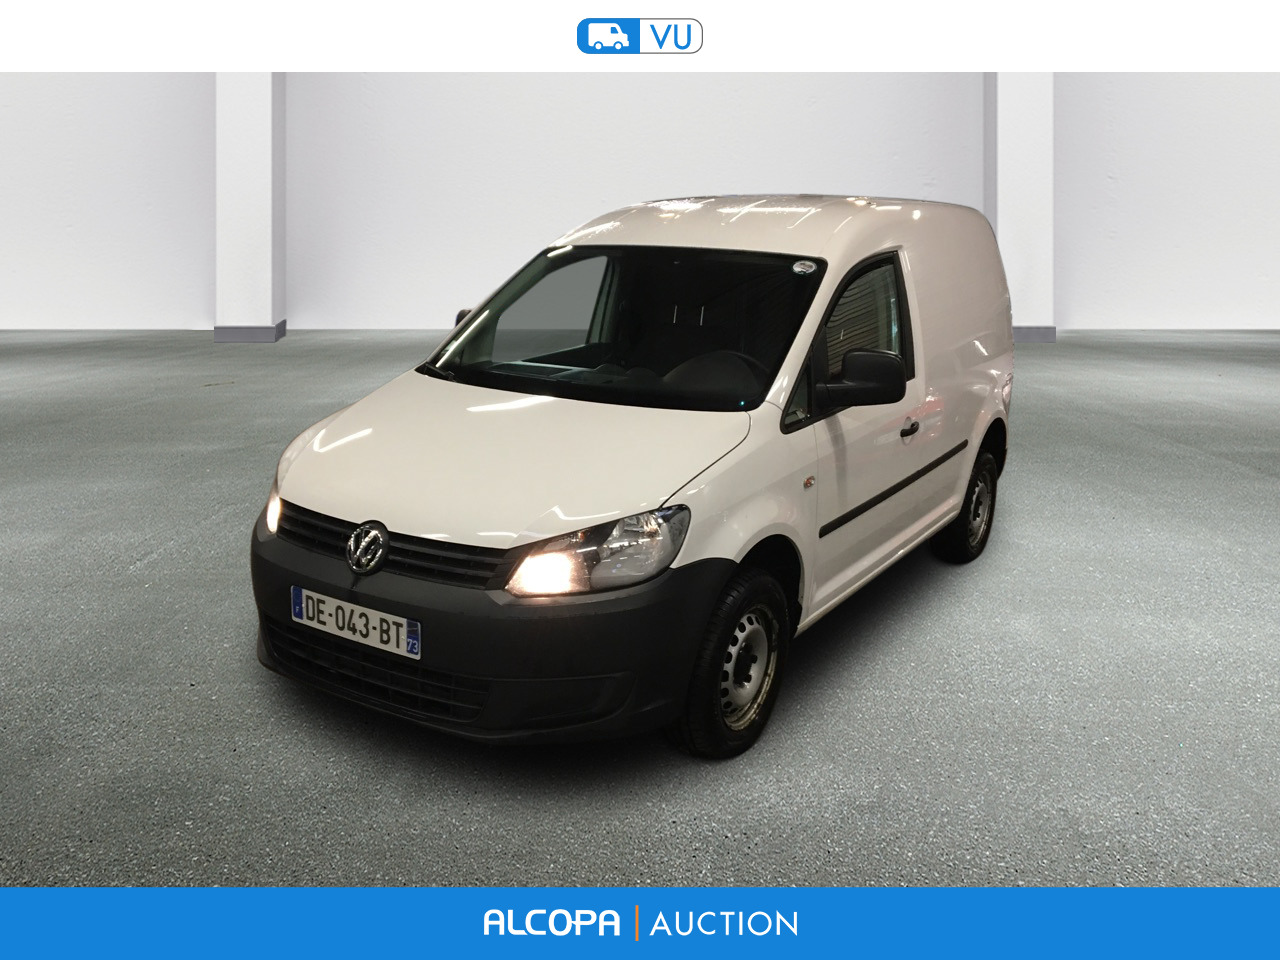 volkswagen caddy caddy van 2 0 tdi 140ch business line 4motion nancy alcopa auction. Black Bedroom Furniture Sets. Home Design Ideas